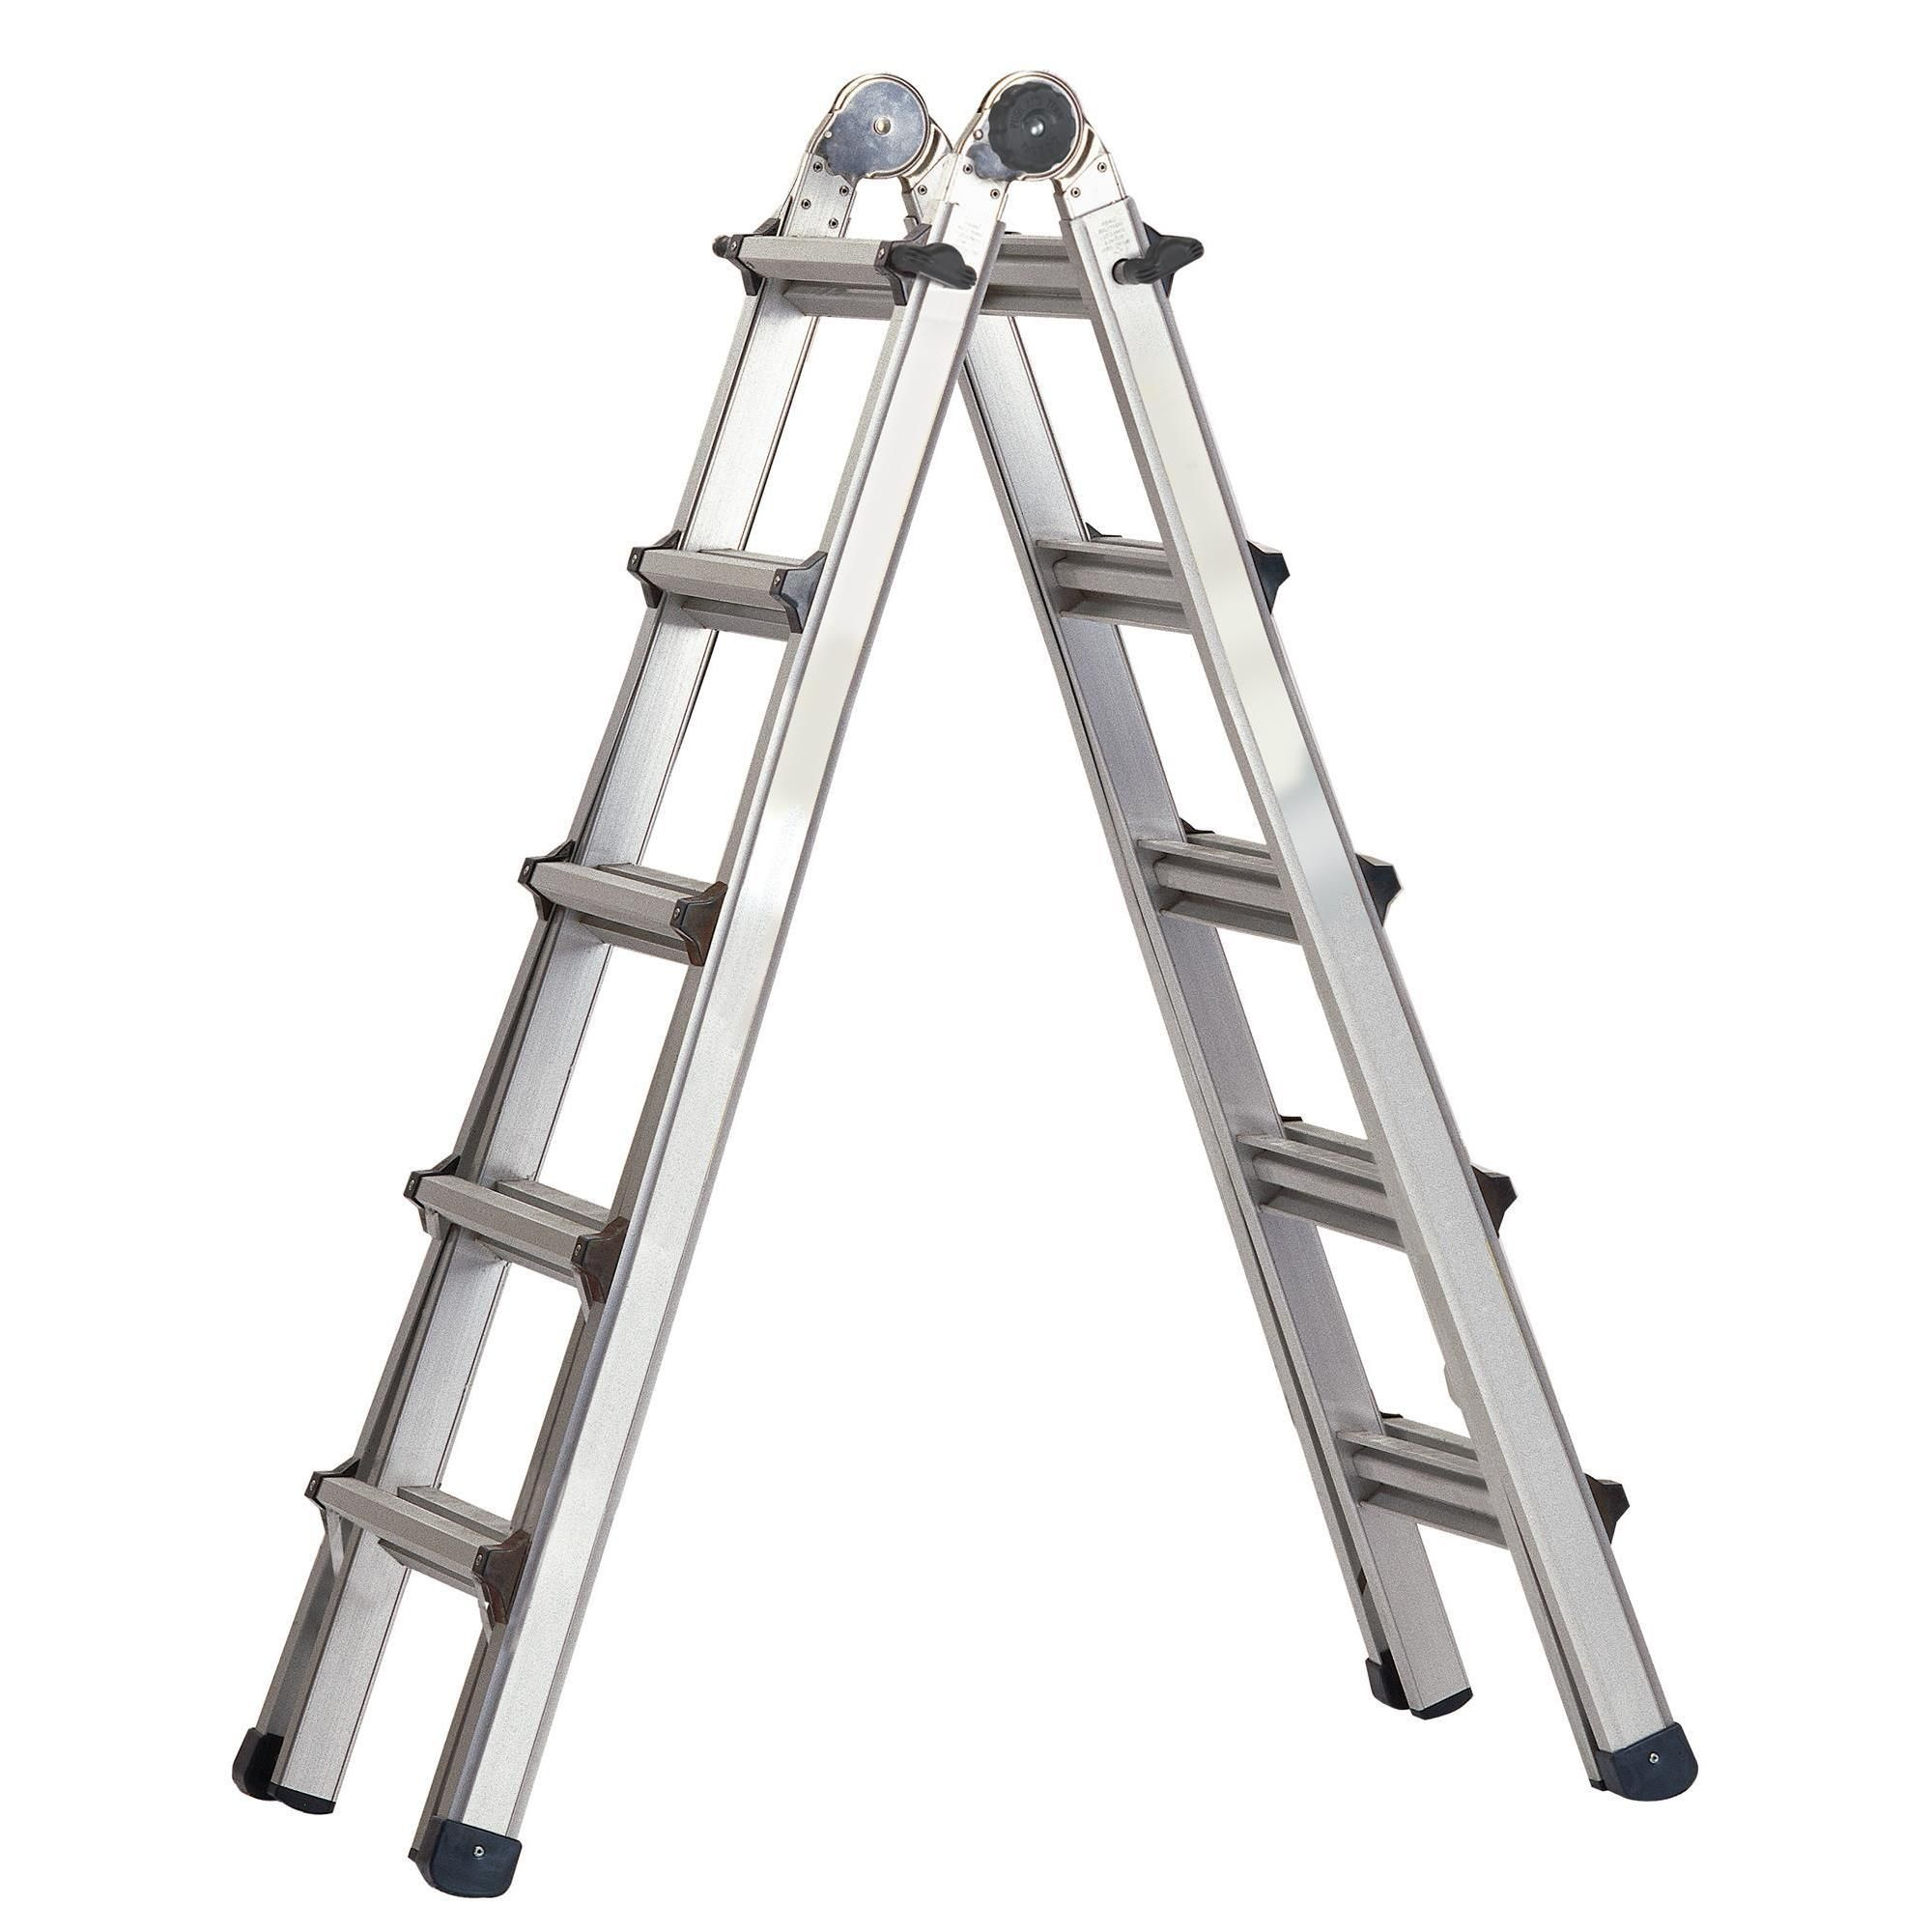 Online Shopping Bedding Furniture Electronics Jewelry Clothing More Ladder Wall Ladders Aluminium Ladder